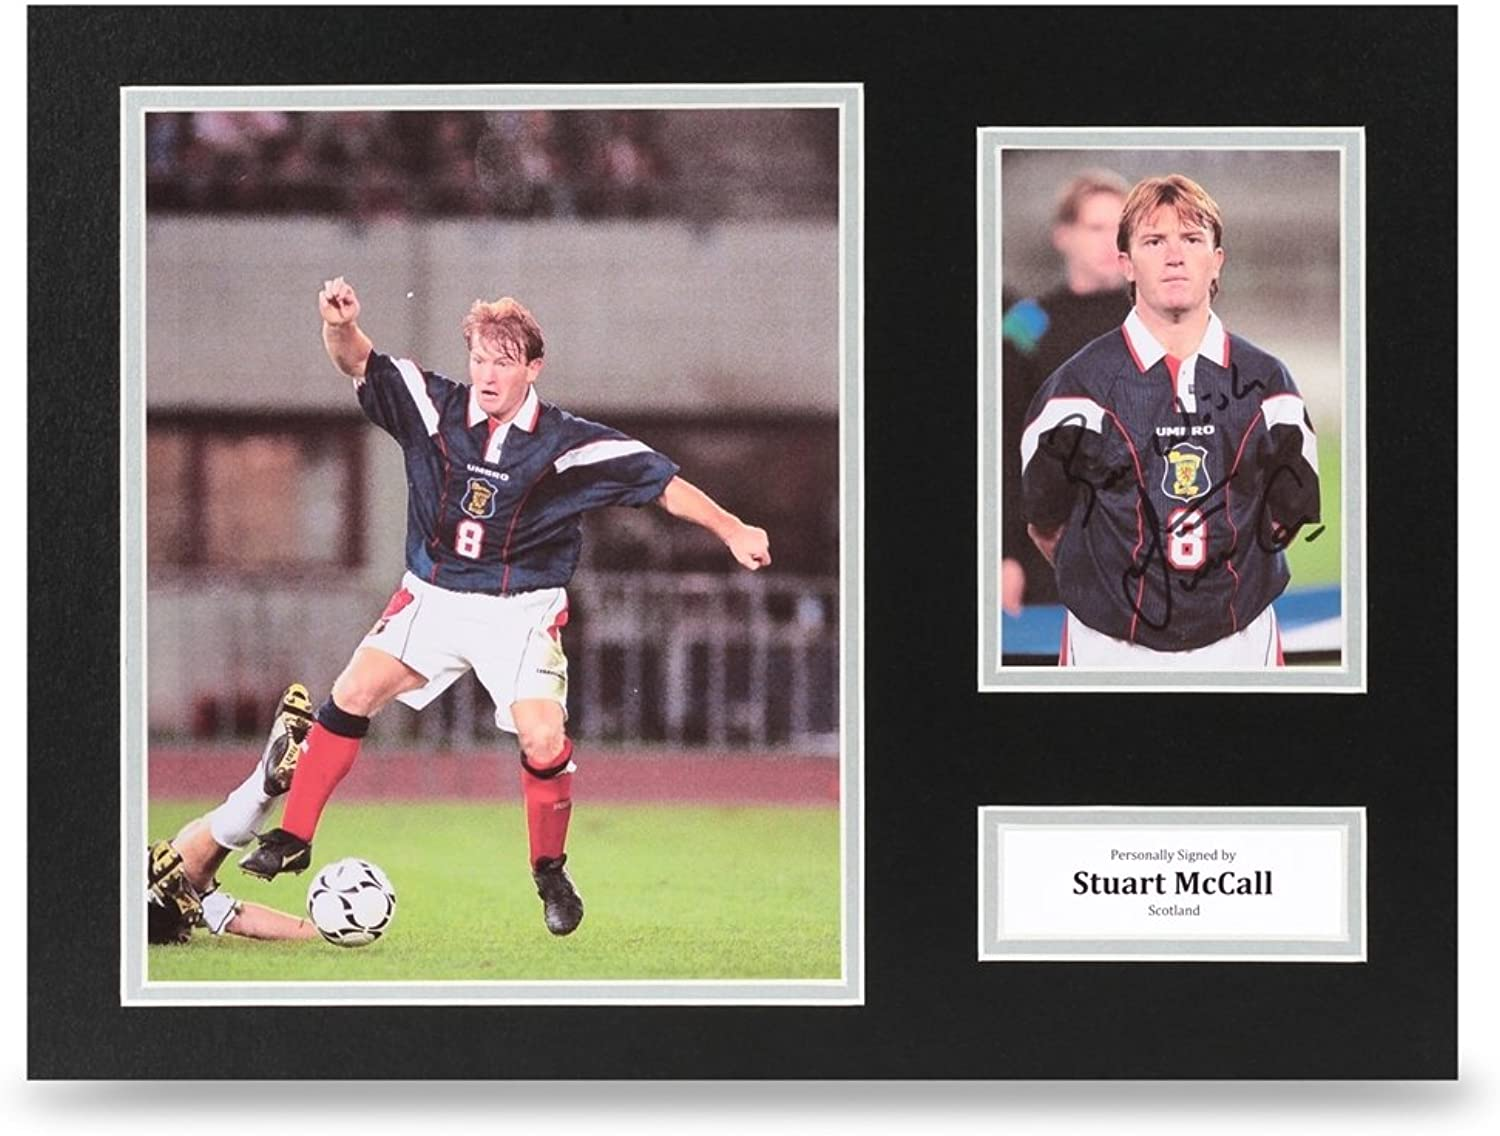 Stuart McCall Signed 16x12 Photo Display Scotland Autograph Memorabilia + COA